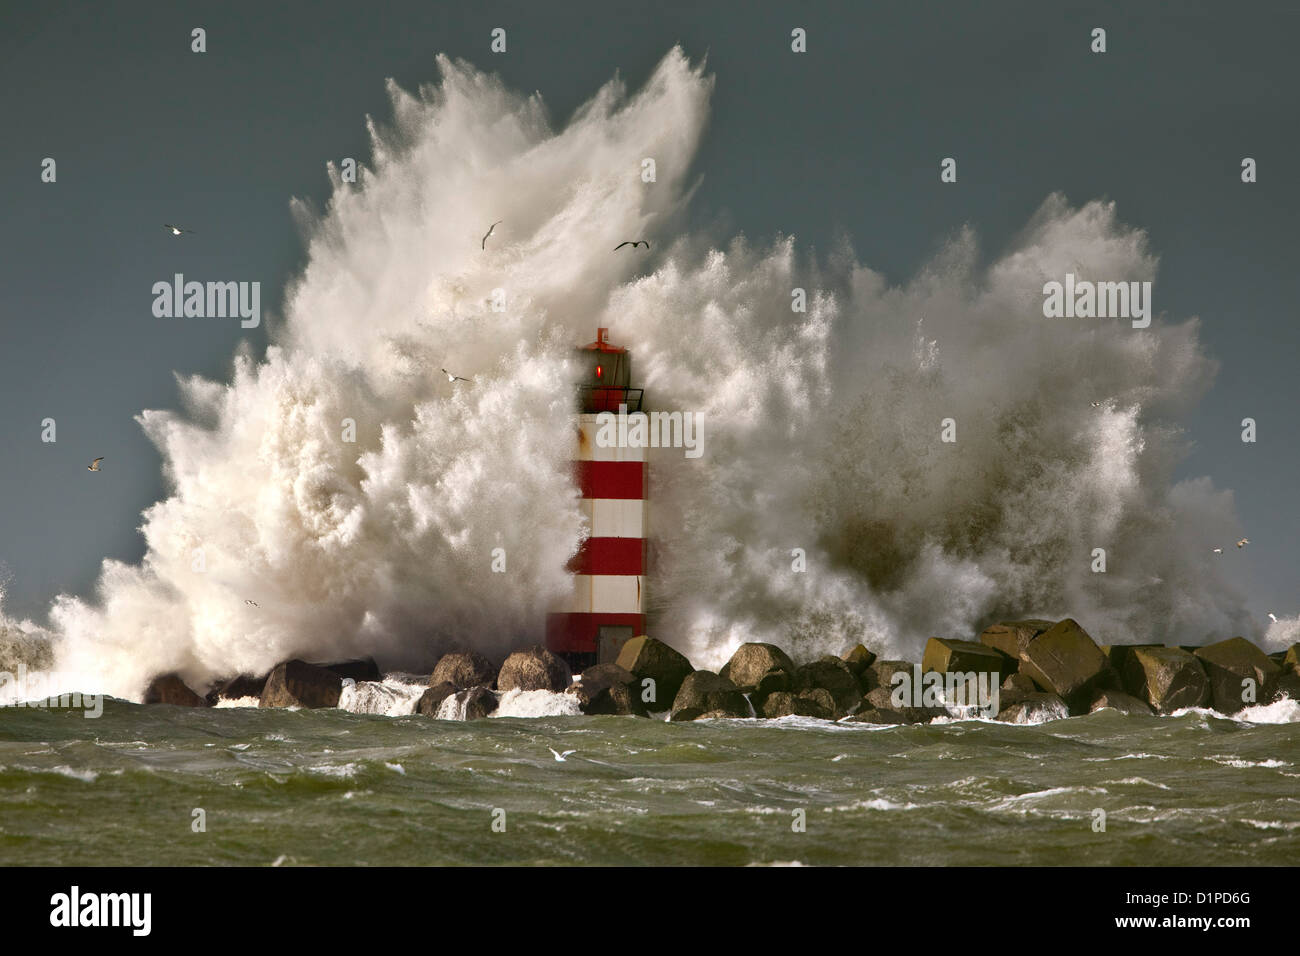 [Image: the-netherlands-ijmuiden-storm-waves-sma...D1PD6G.jpg]